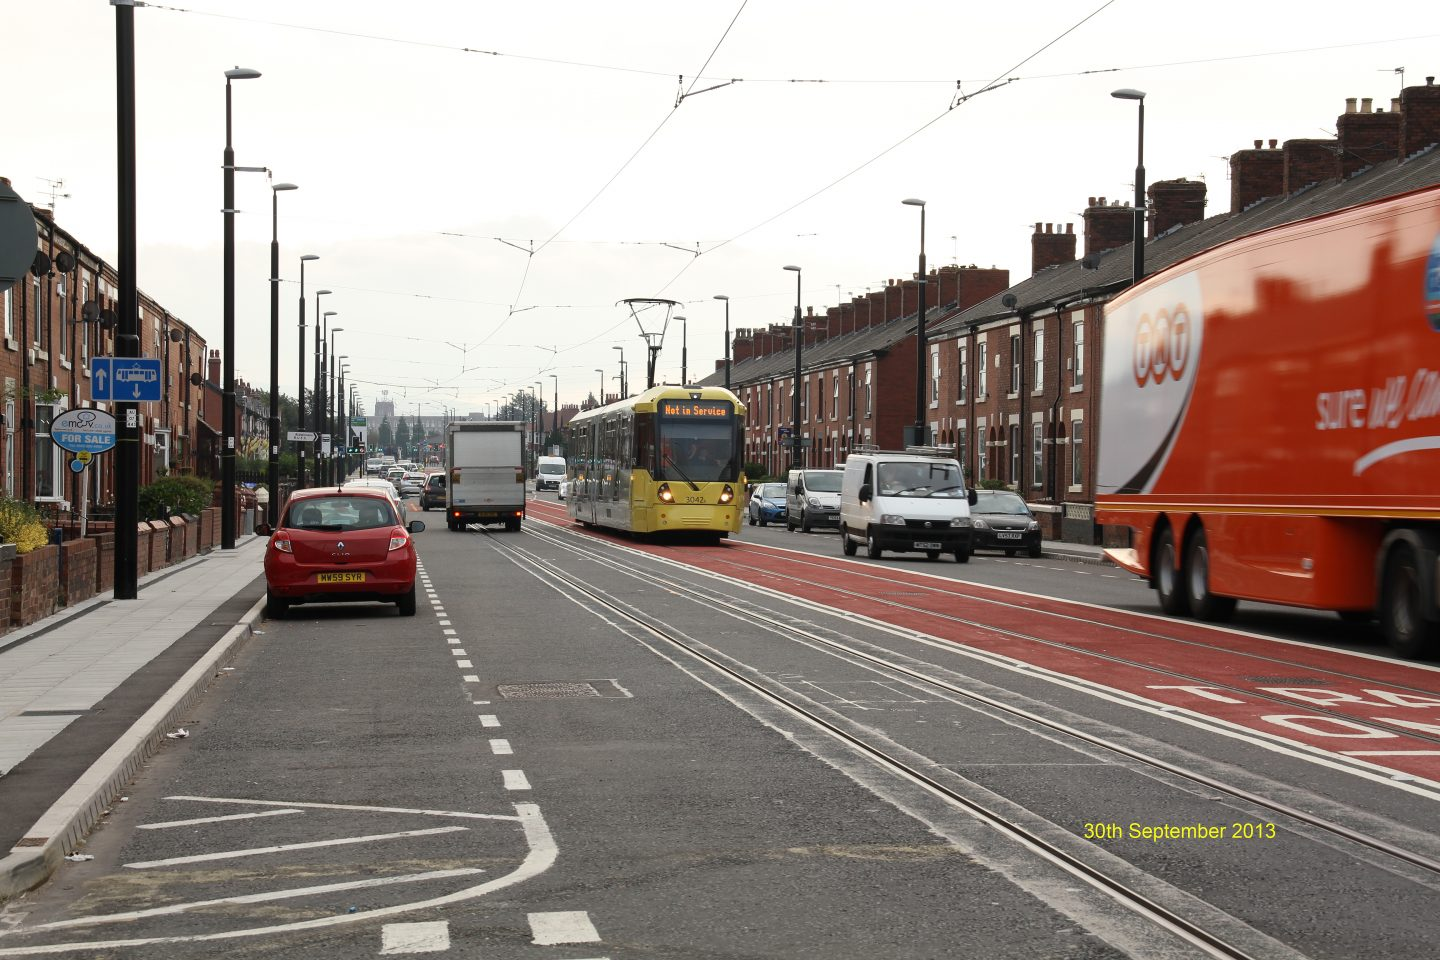 Manchester Metrolink: a world-class tram system